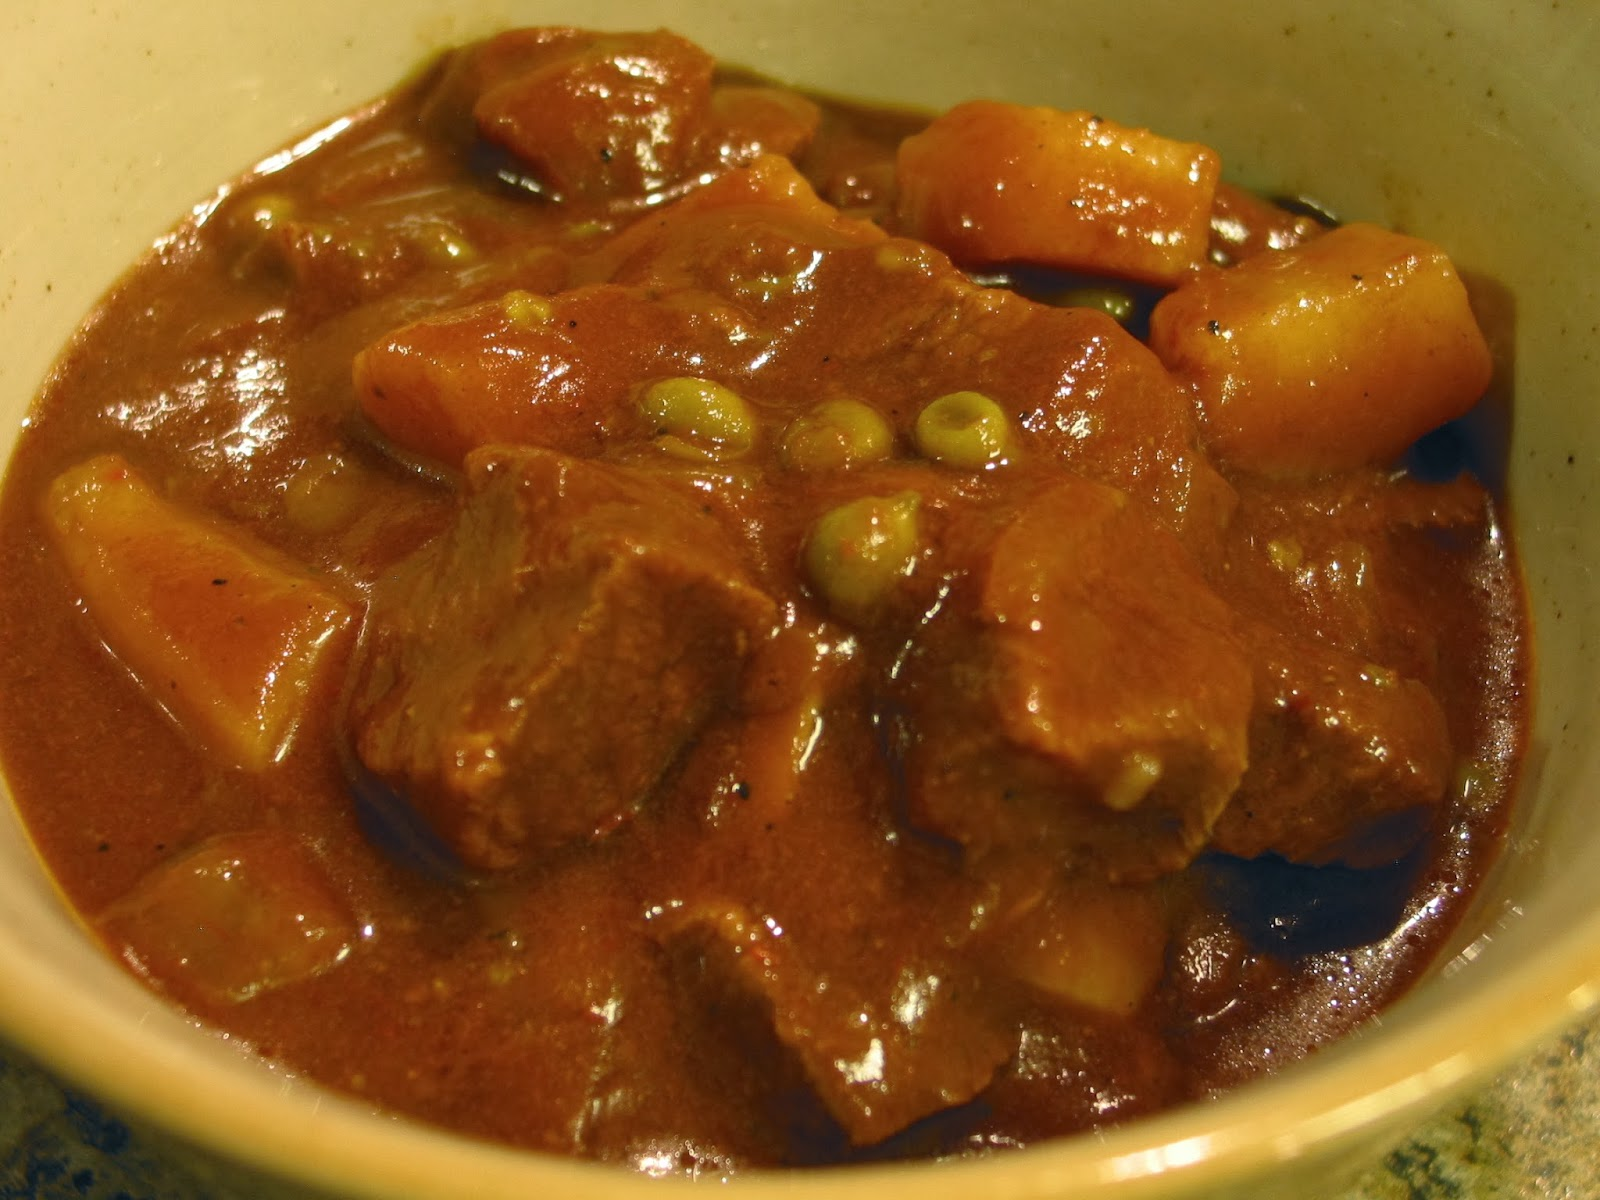 the experimental cook 101: Irish Beef and Stout Stew